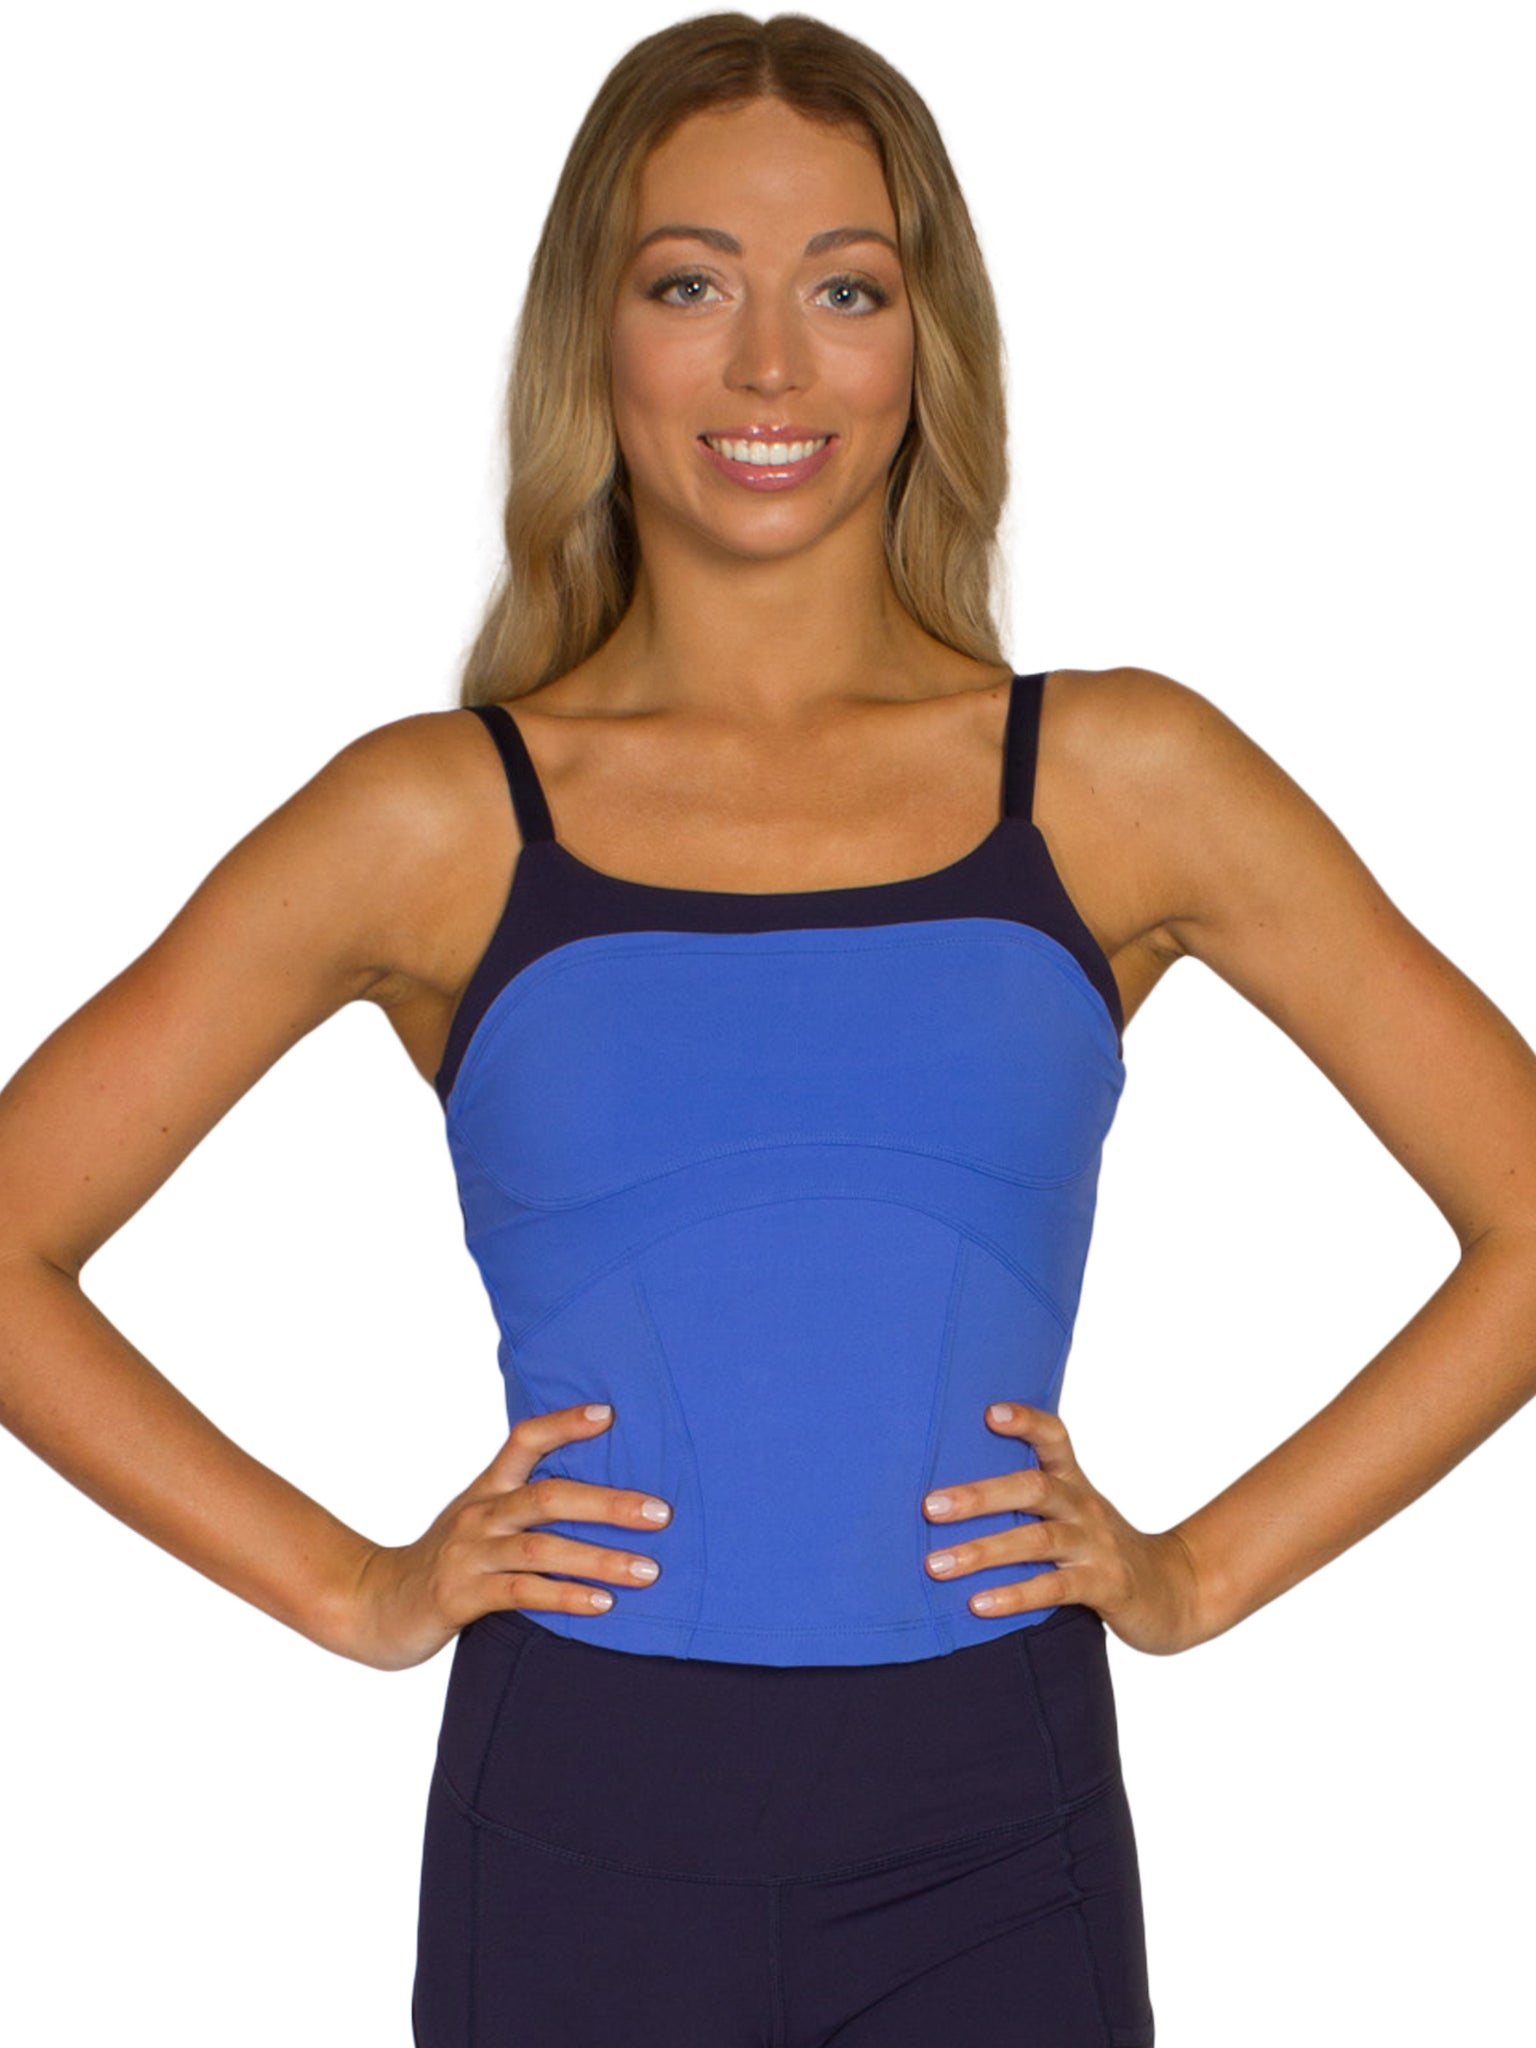 FEARLESS 2 IN 1 FITNESS CROP - ROYAL/NAVY